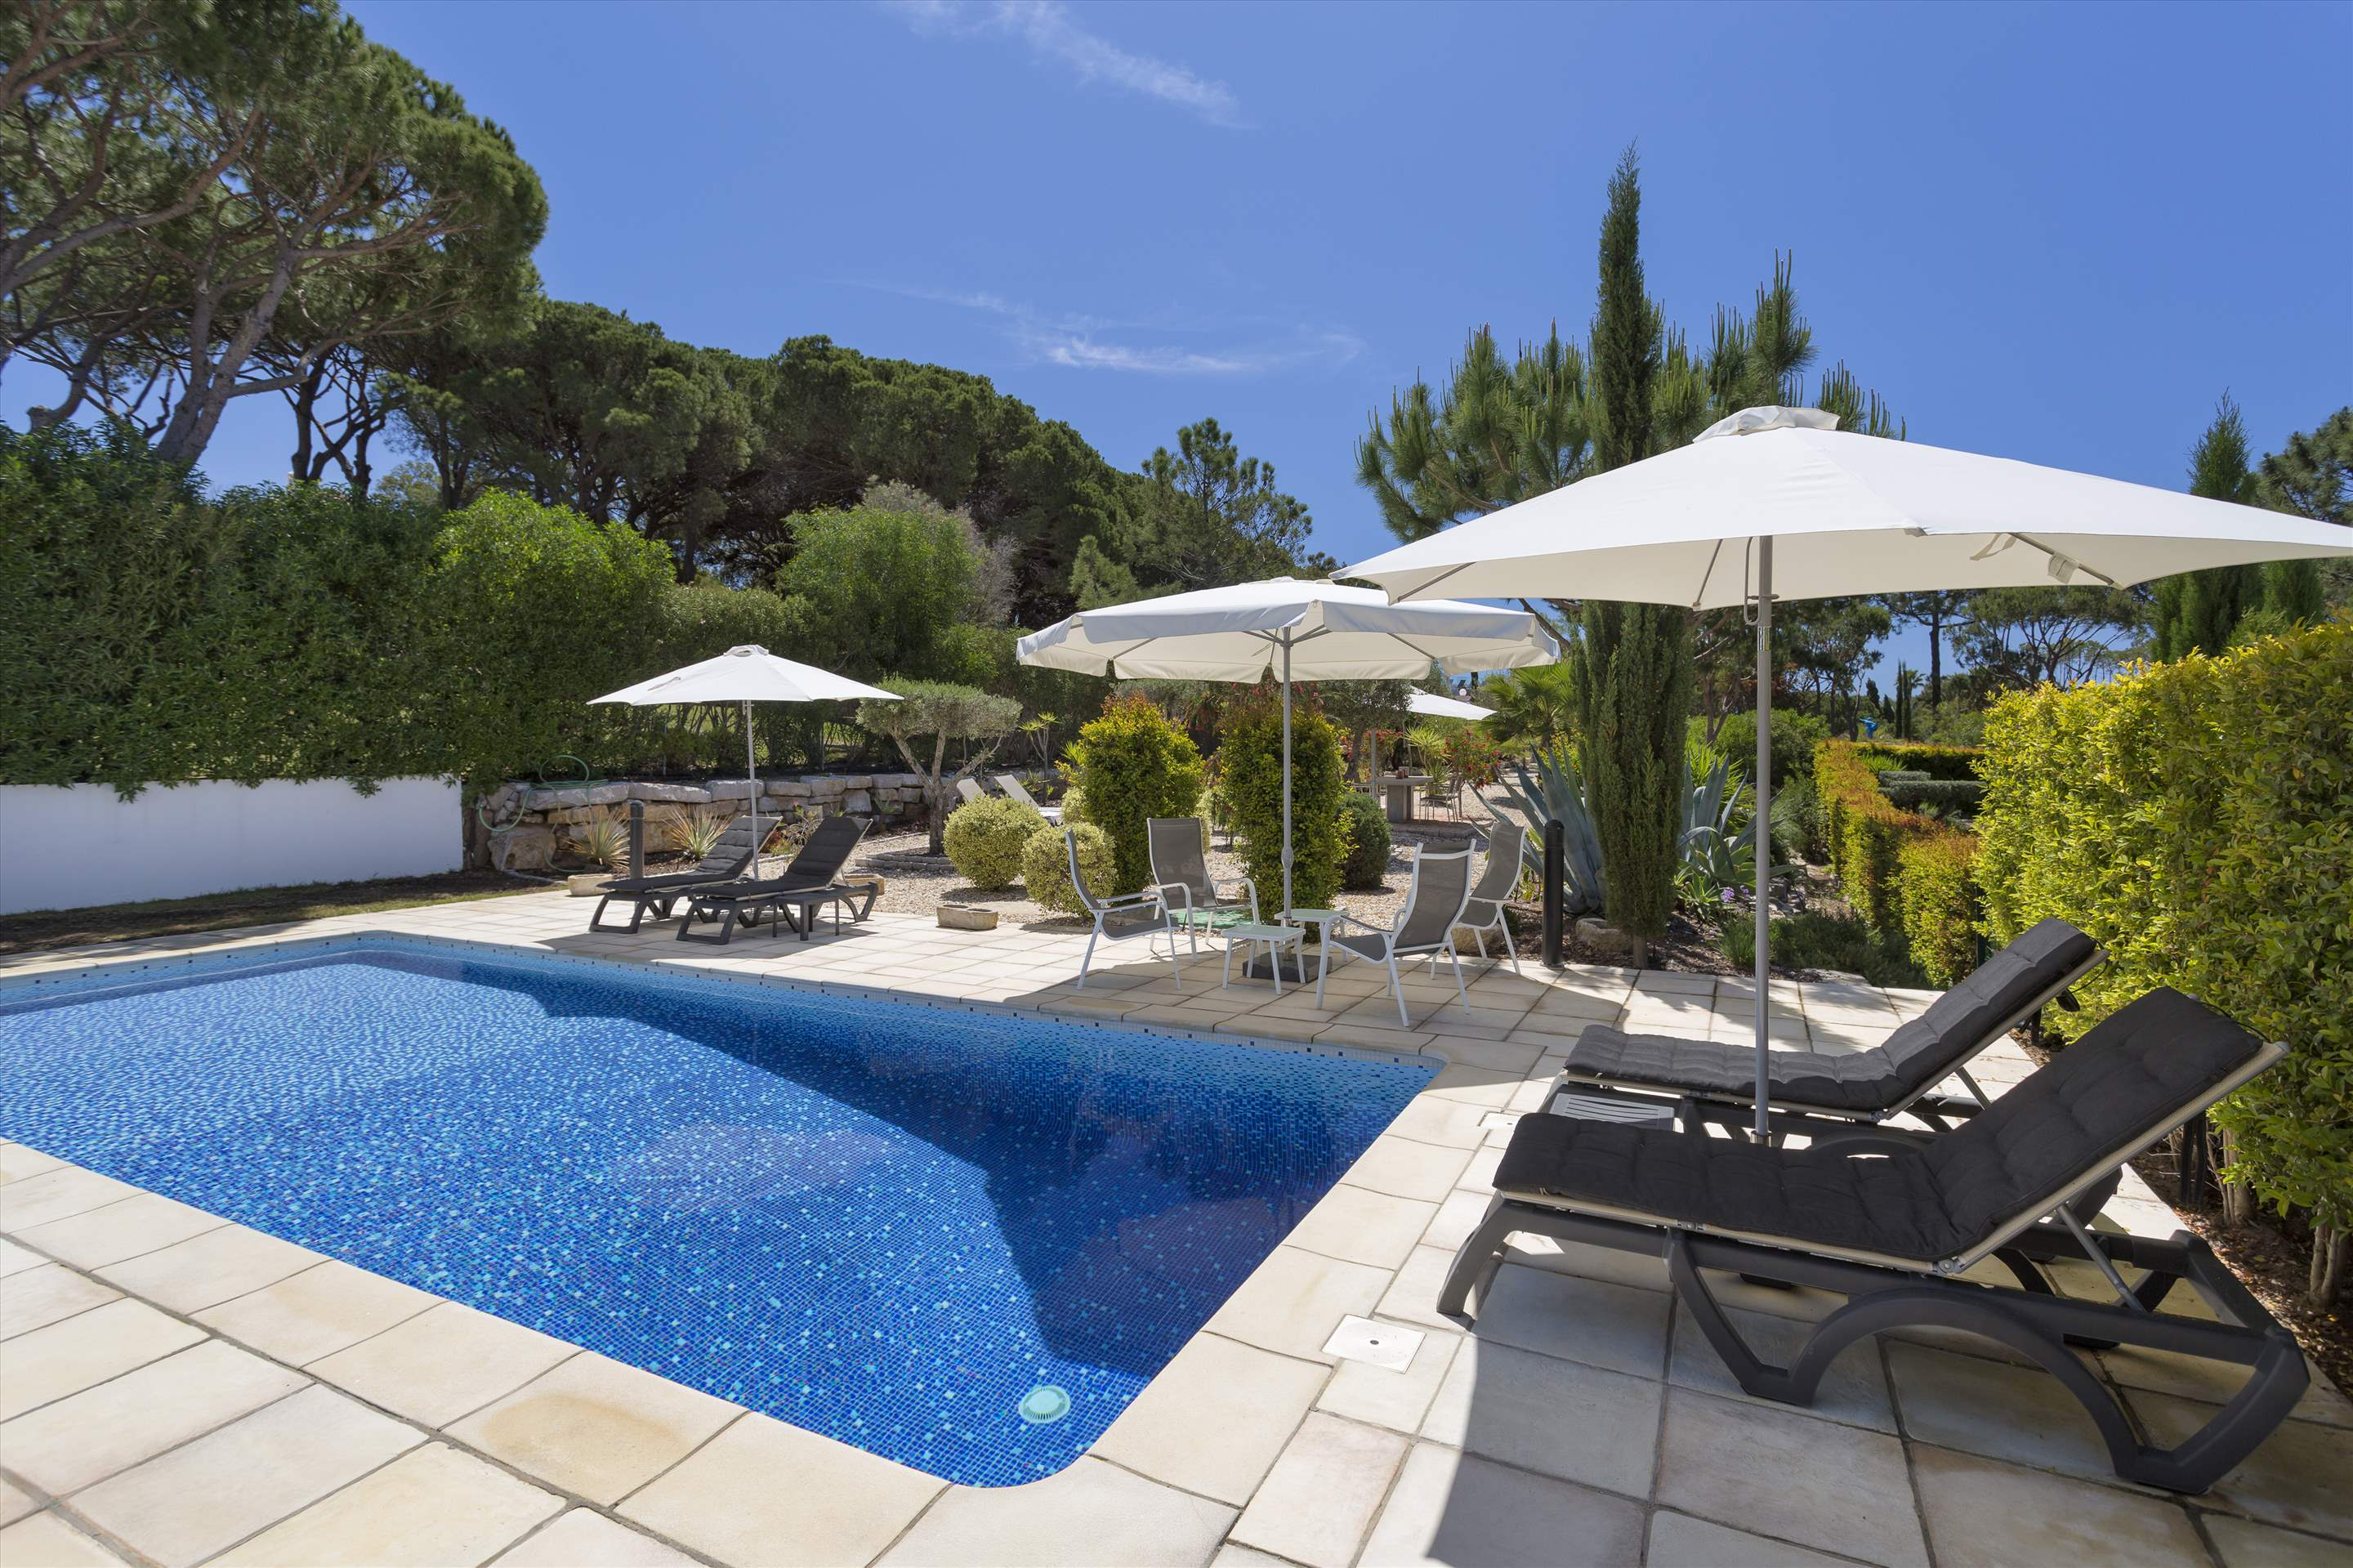 Villa Selena, 2 bedroom villa in Quinta do Lago, Algarve Photo #15